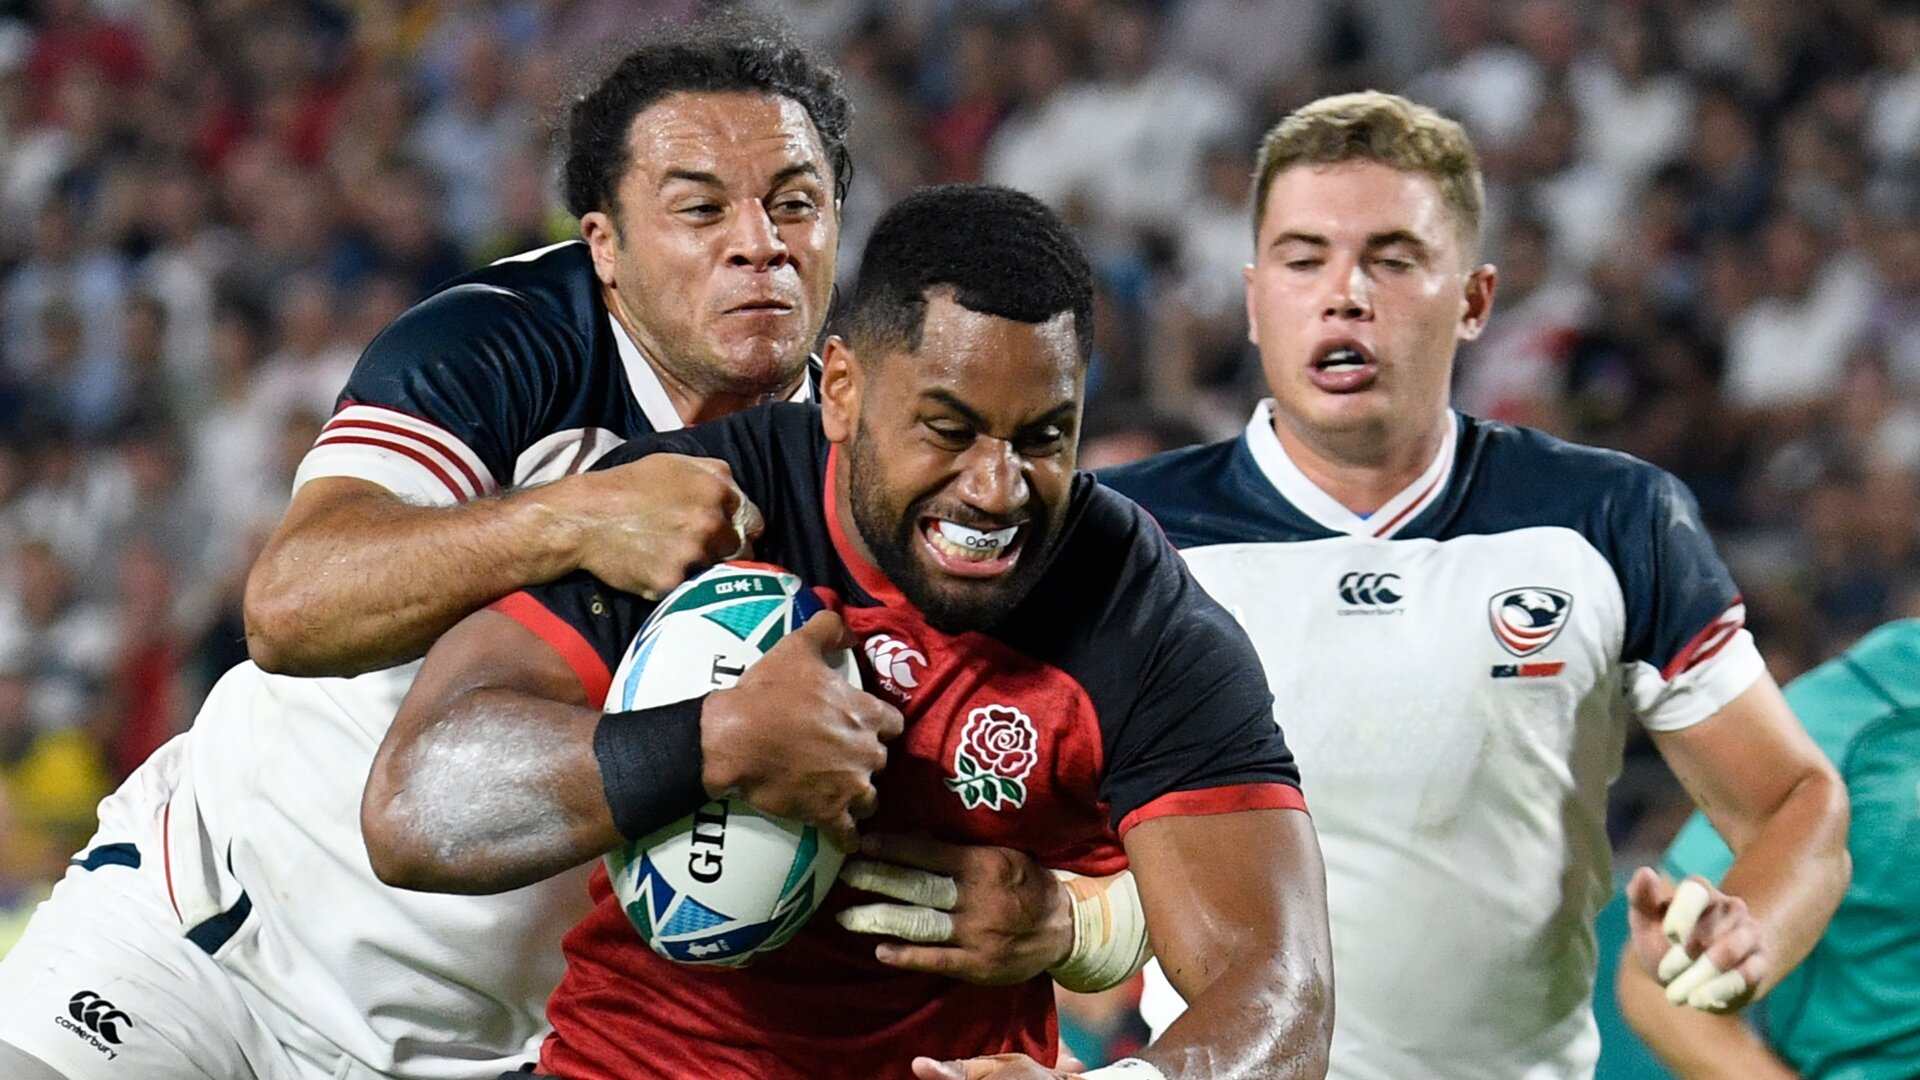 Cokanasiga stars in first game since England beat USA 12 months ago